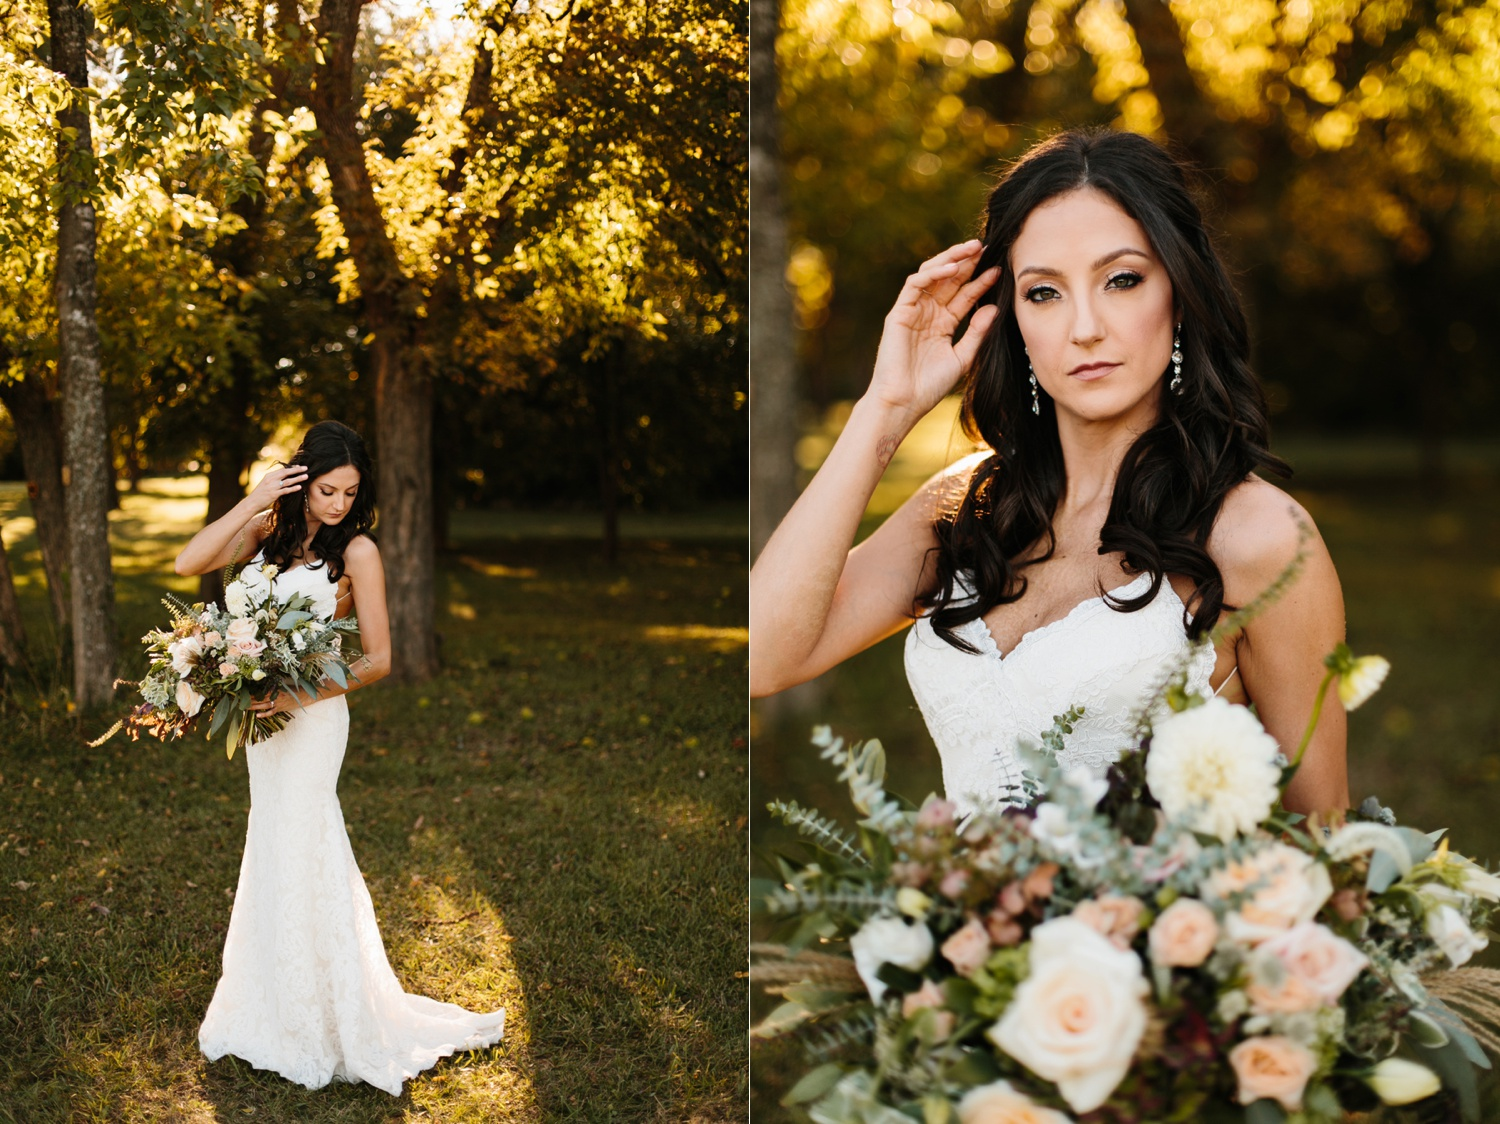 Erica + Henry | a bohemian inspired wedding at Chandlers Gardens in Salina, TX by North Texas Wedding Photographer Rachel Meagan Photography 059